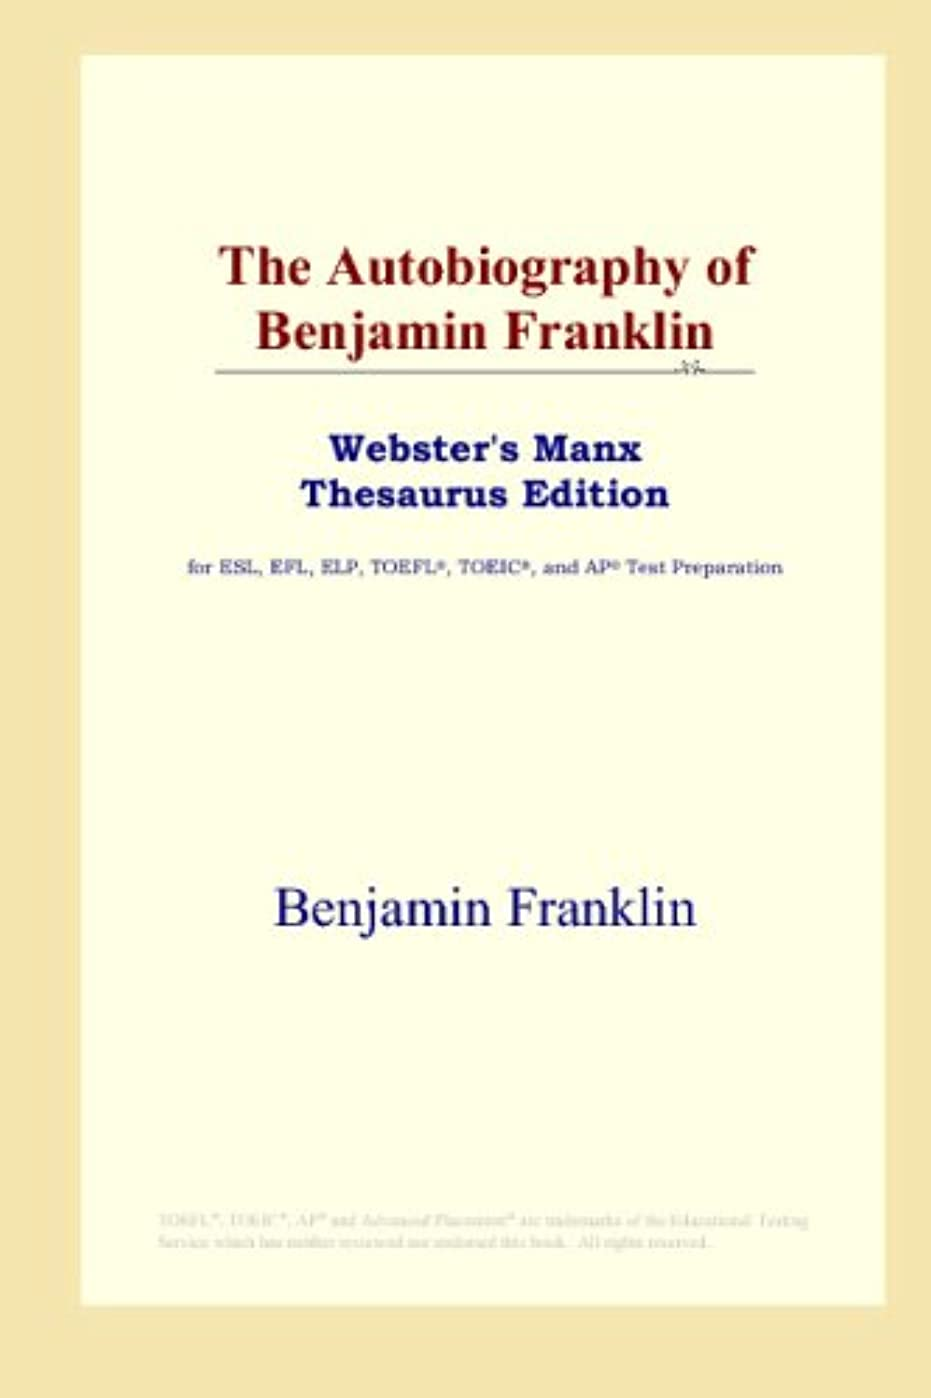 The Autobiography of Benjamin Franklin (Webster's Manx Thesaurus Edition)